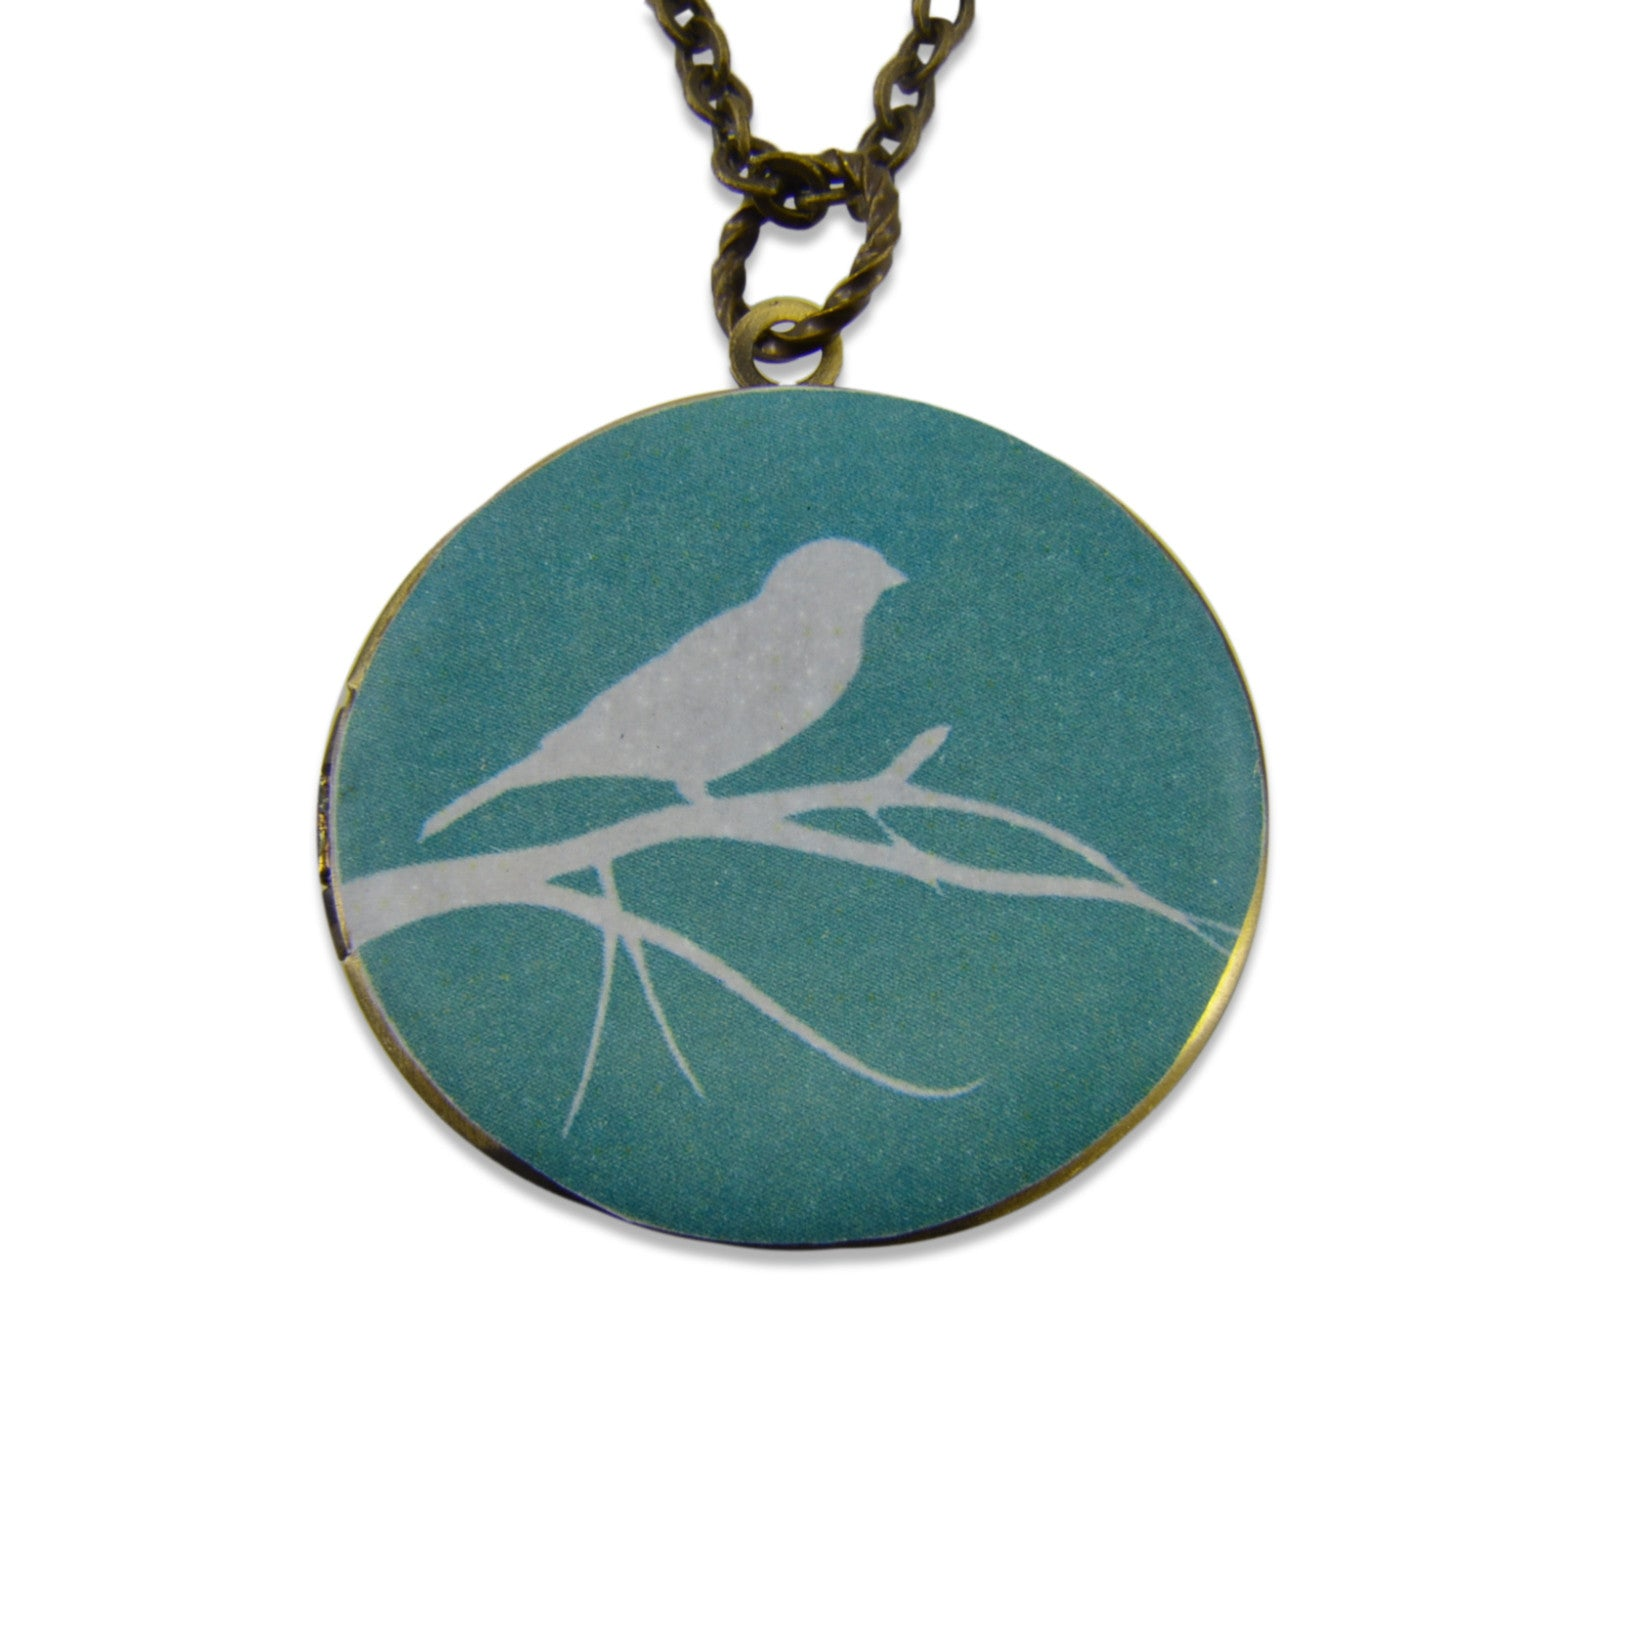 Invisible Bird Vintage Theme Photo Locket - Gwen Delicious Jewelry Designs